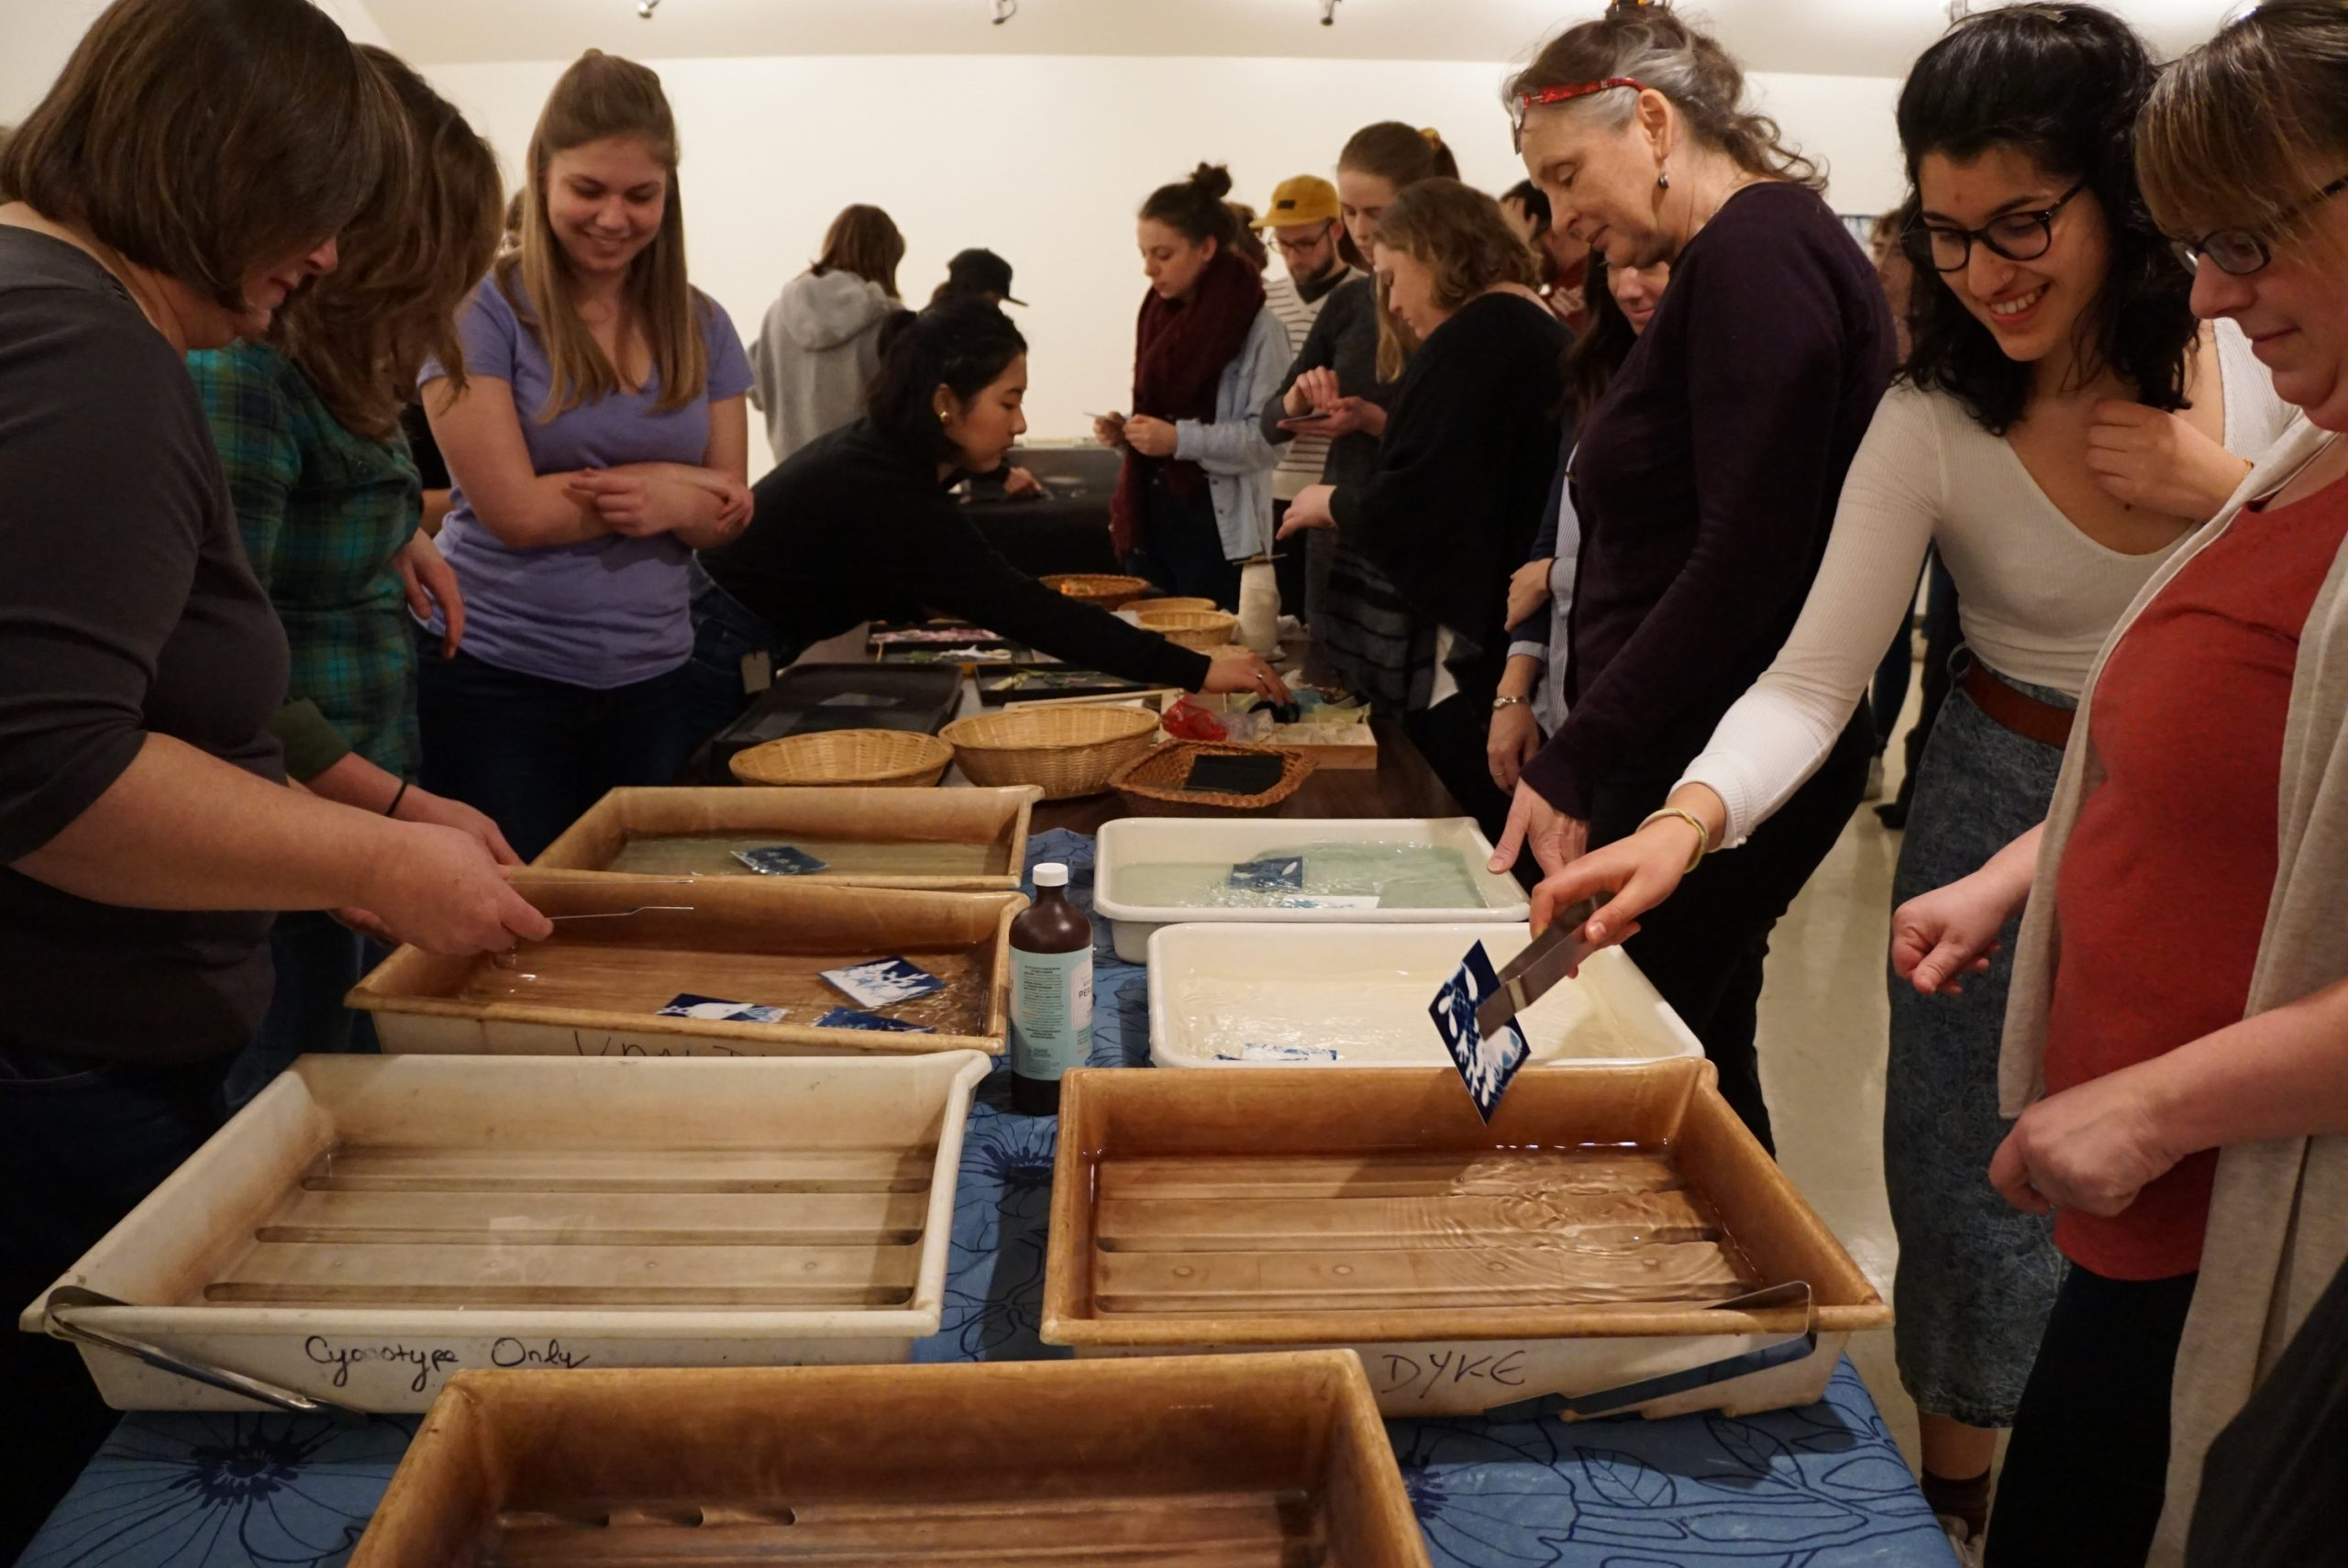 People crowd around a long table with two rows of plastic trays containing developing solution. One person who is smiling lifts a small blue and white cyanotype print from one of the trays using tongs. Nearby others look at the cyanotype prints floating in the various trays.